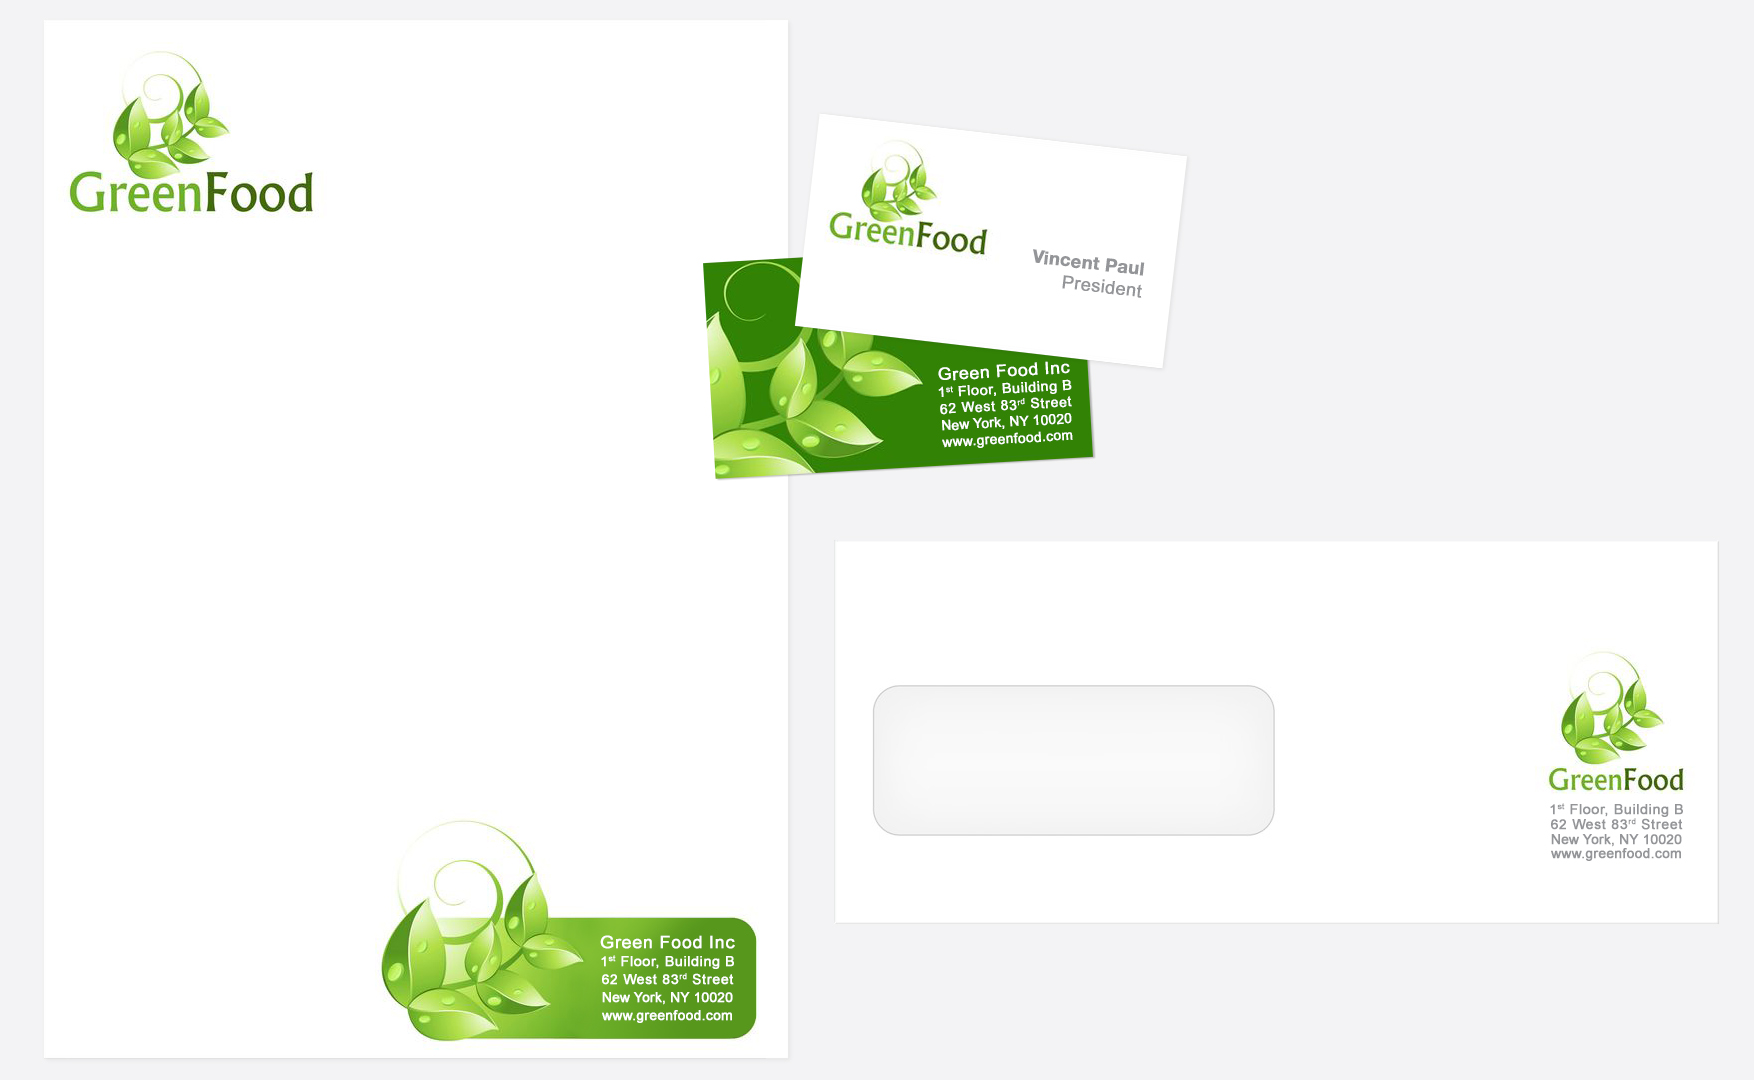 Custom Letterhead, Business Cards and Envelopes to promote your company in style